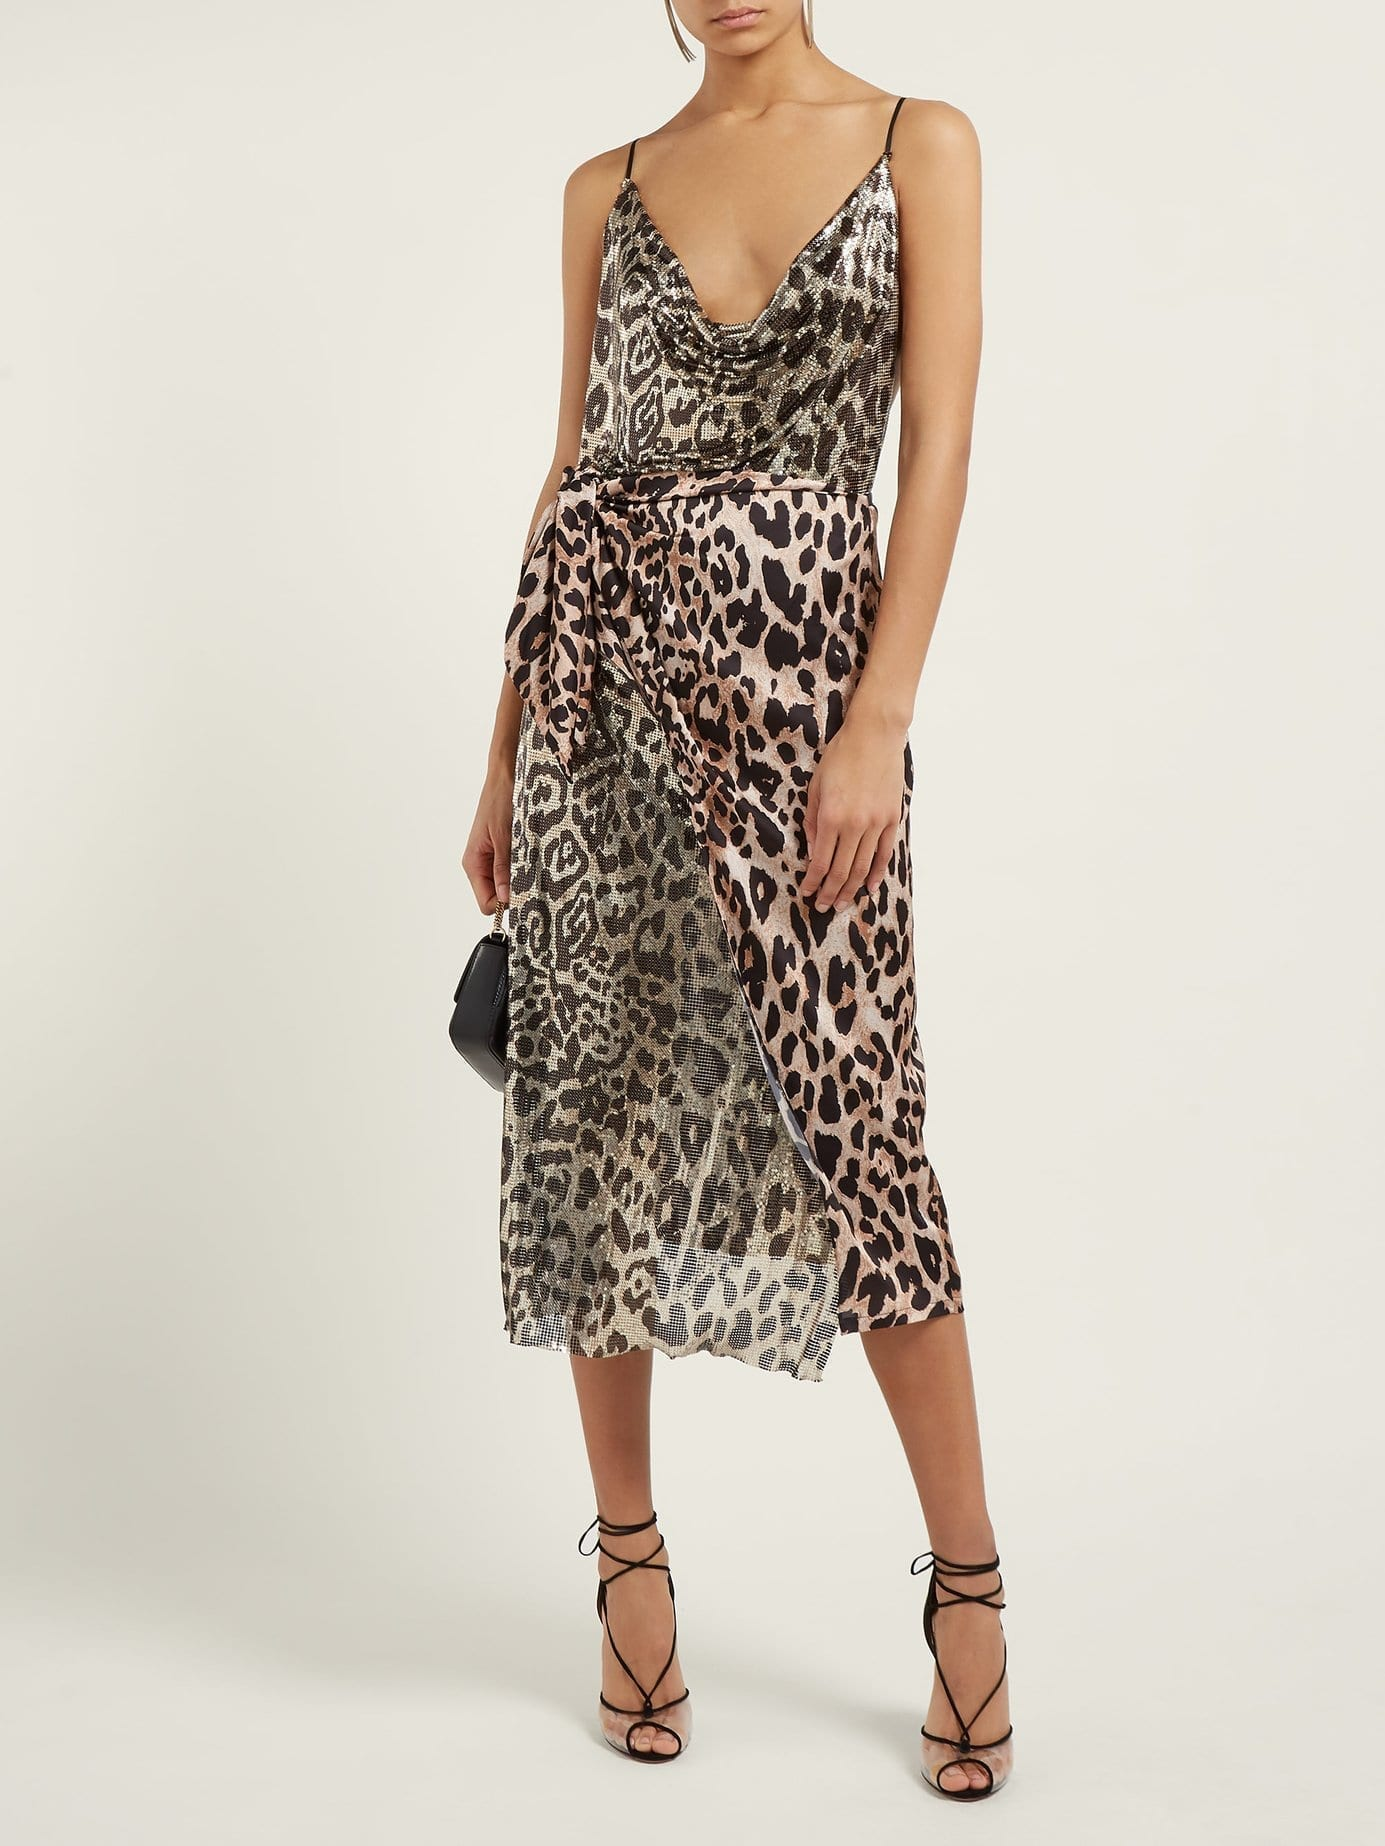 PACO RABANNE Leopard Chain-mail And Satin Multicolored Dress. PACO RABANNE  Leopard Chain-mail And Satin Multicolored Dress 880aee92b